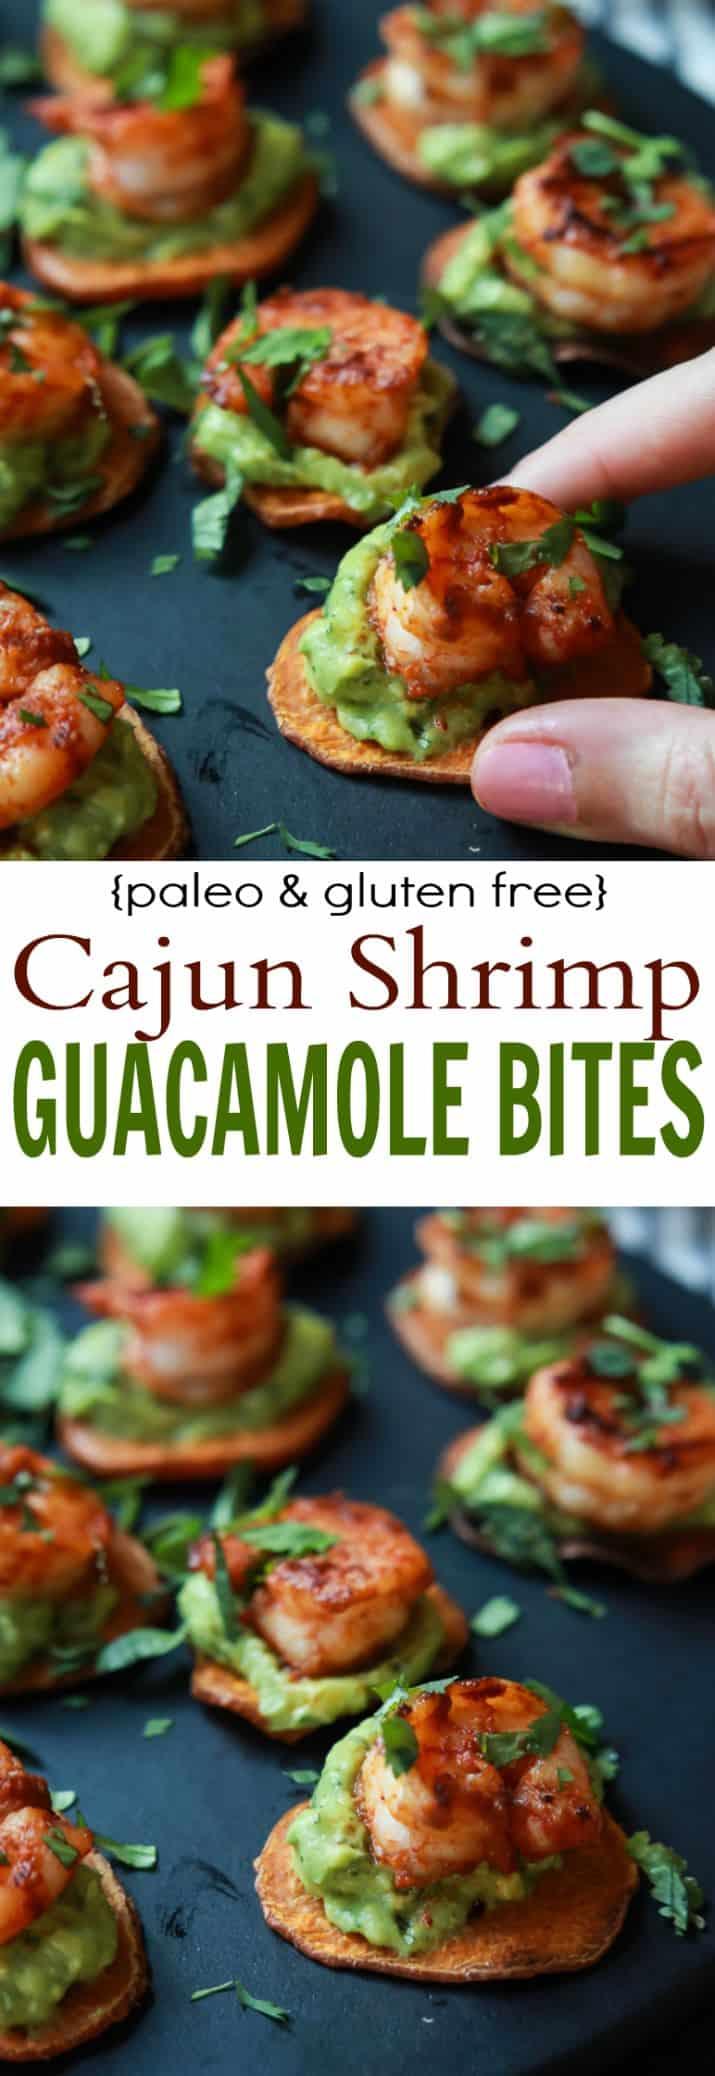 Cajun Shrimp Guacamole Bites, the perfect appetizer for your next game day party! Creamy, spicy, healthy, paleo, and delicious! | joyfulhealthyeats.com